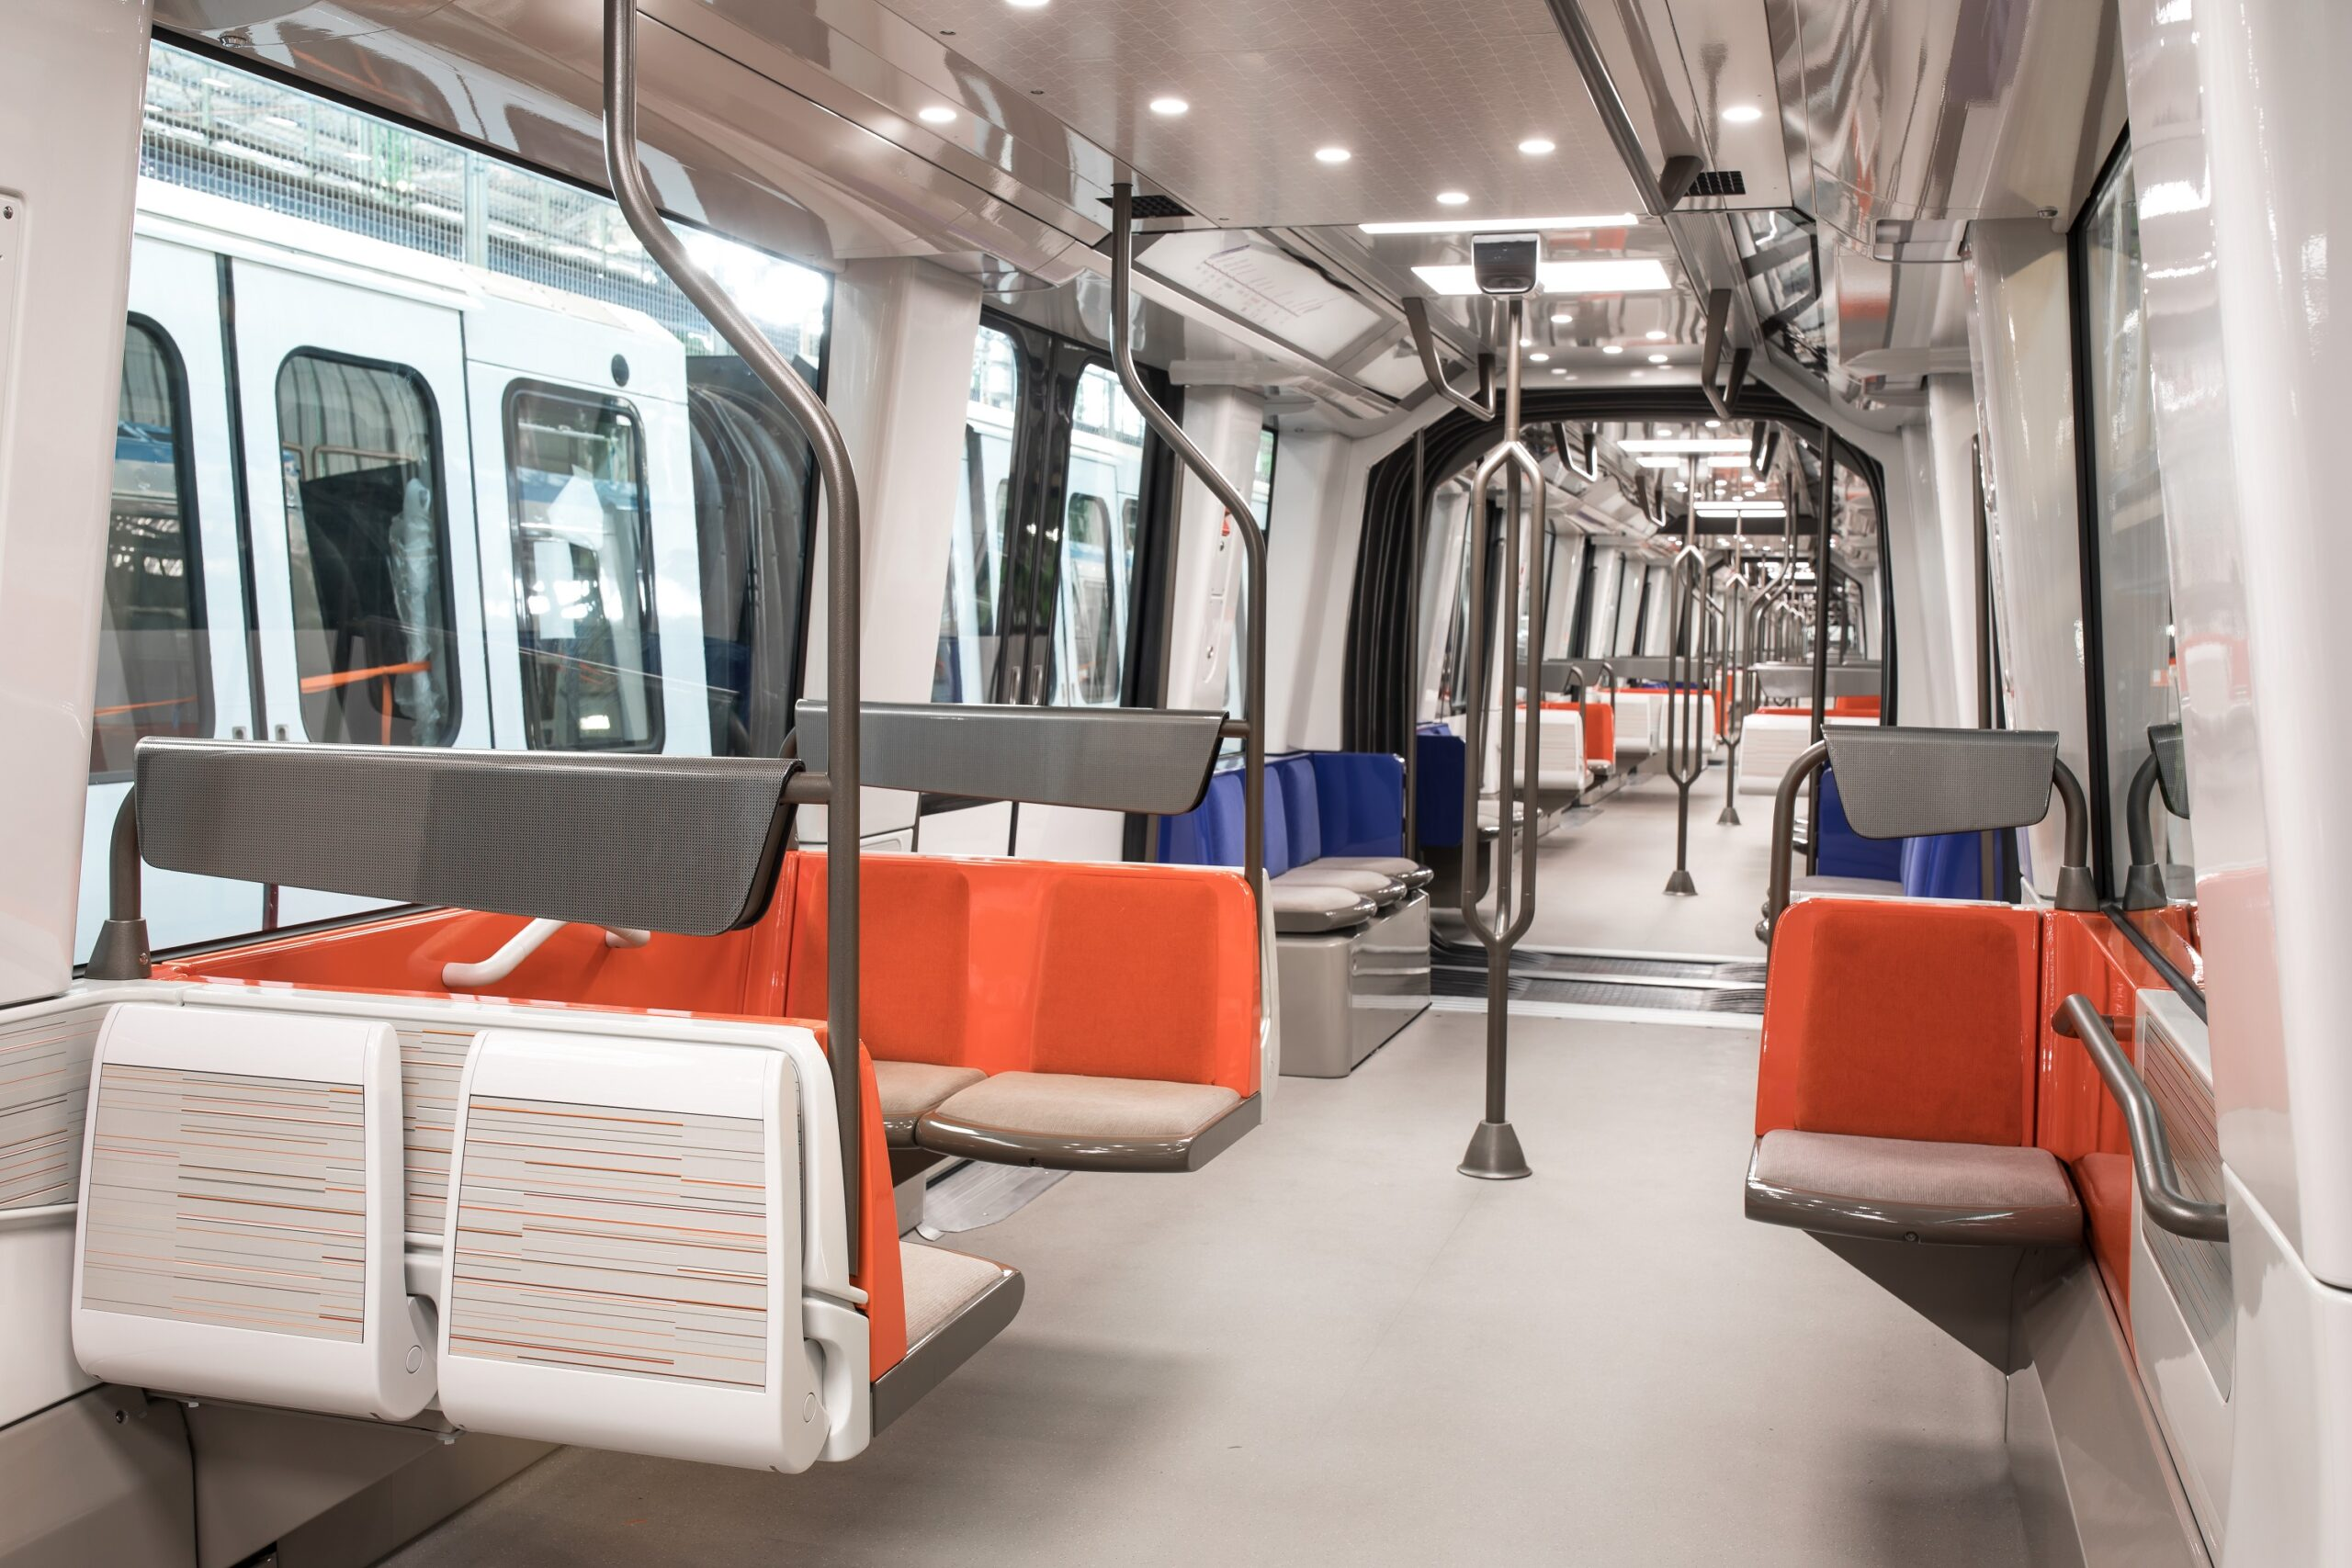 Interior of the MP14 metro for Line 14, Paris